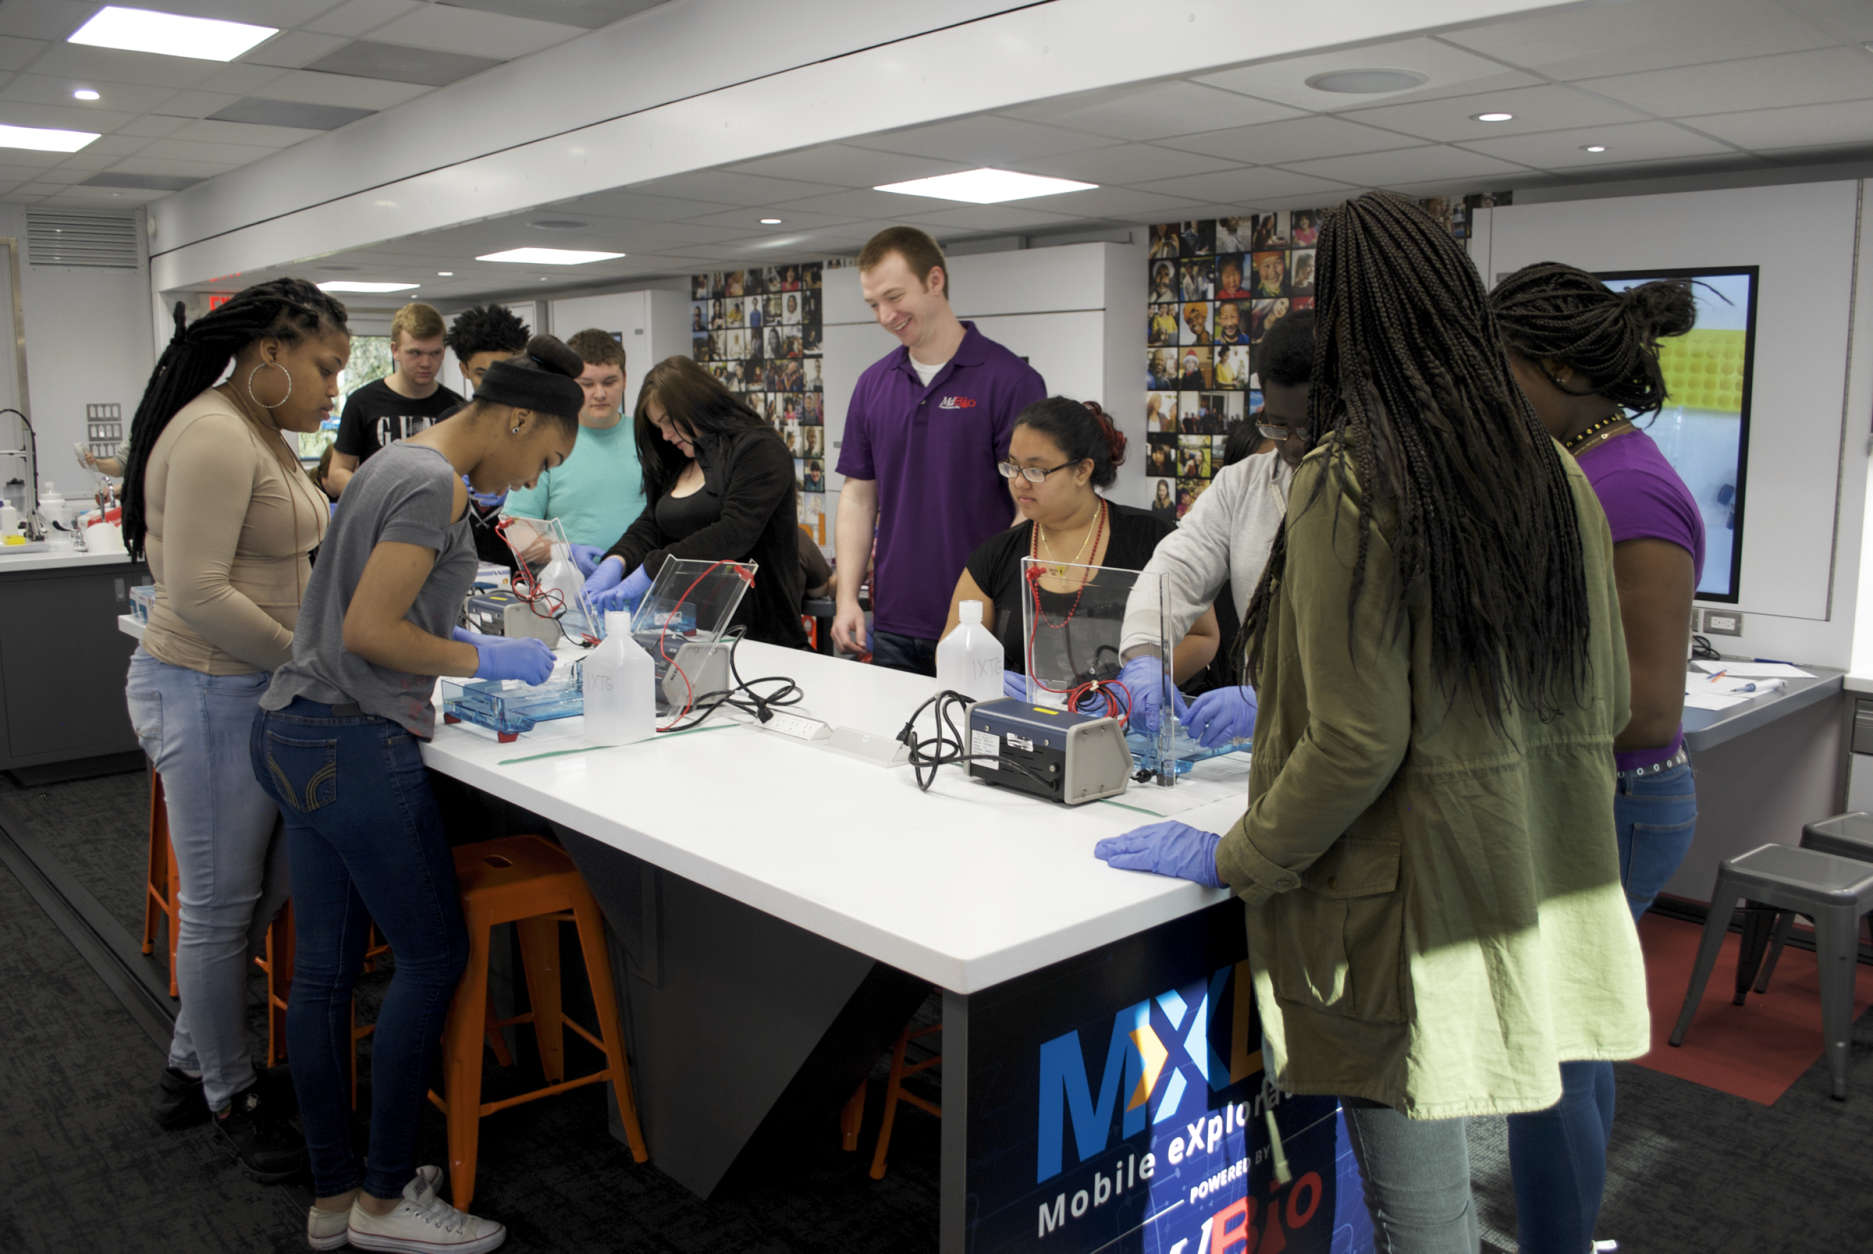 The goal of the trailer, according to MdBio, is to inspire students to pursue STEM careers. (Courtesy of MdBio Foundation)